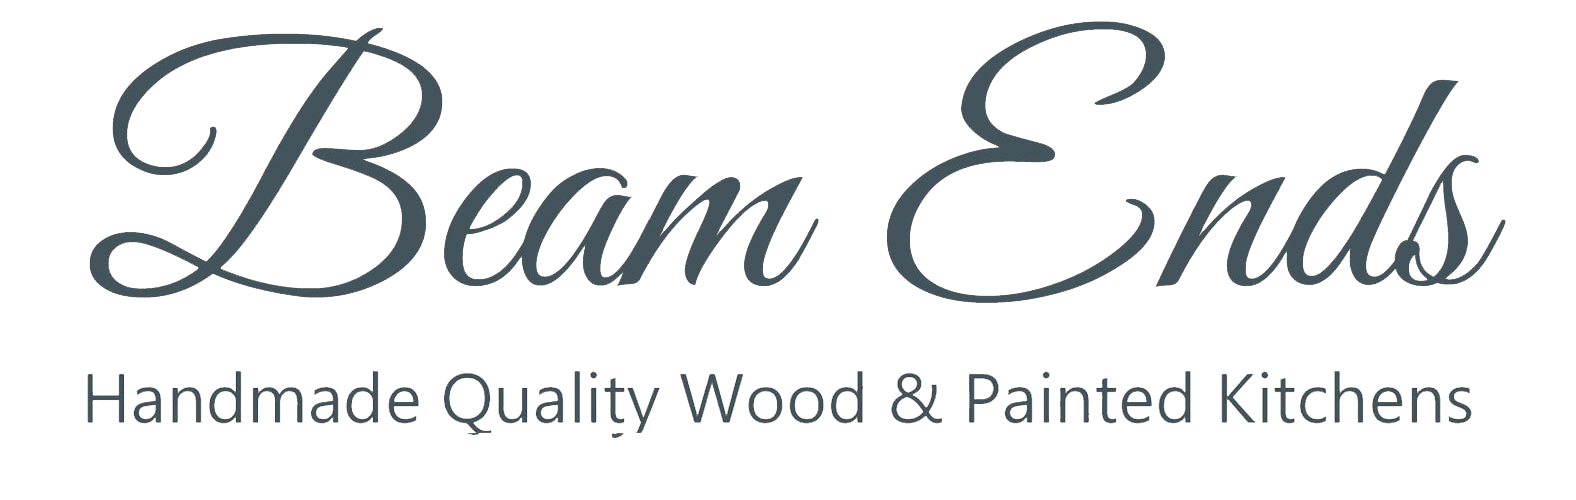 Beam Ends Kitchens - bespoke kitchens handmade in Norfolk/Norwich